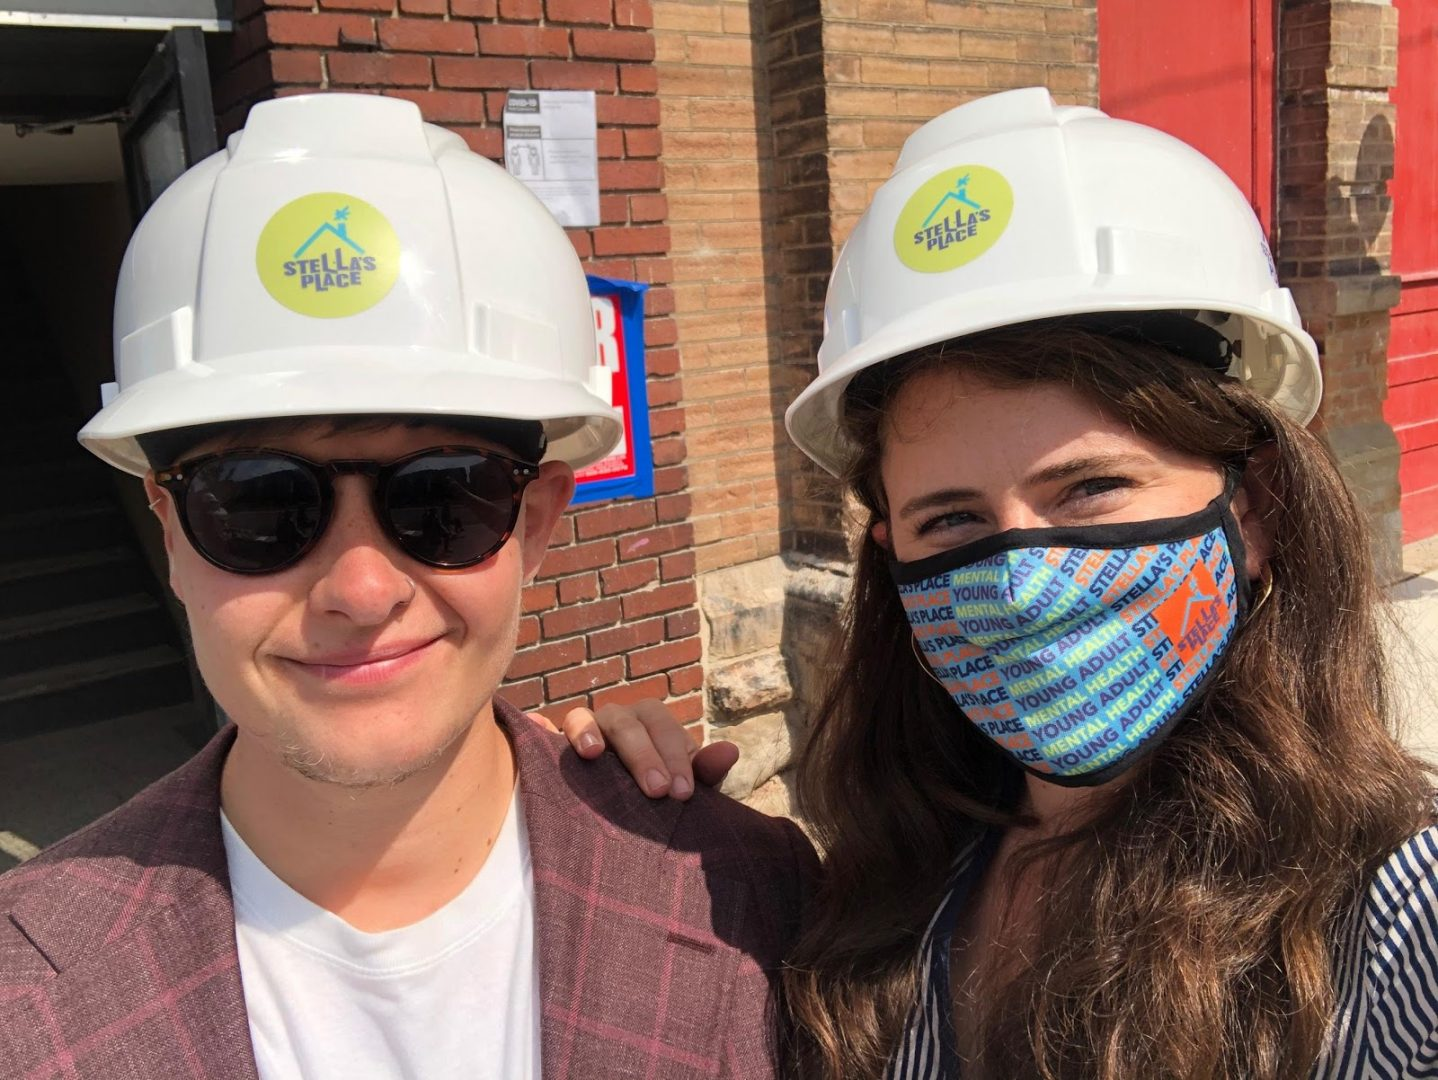 Elisa and Stella posing together in hard hats that have a Stella's Place sticker on the front. Stella is wearing a brightly coloured Stella's Place face mask and Stella is wearing black sunglasses.